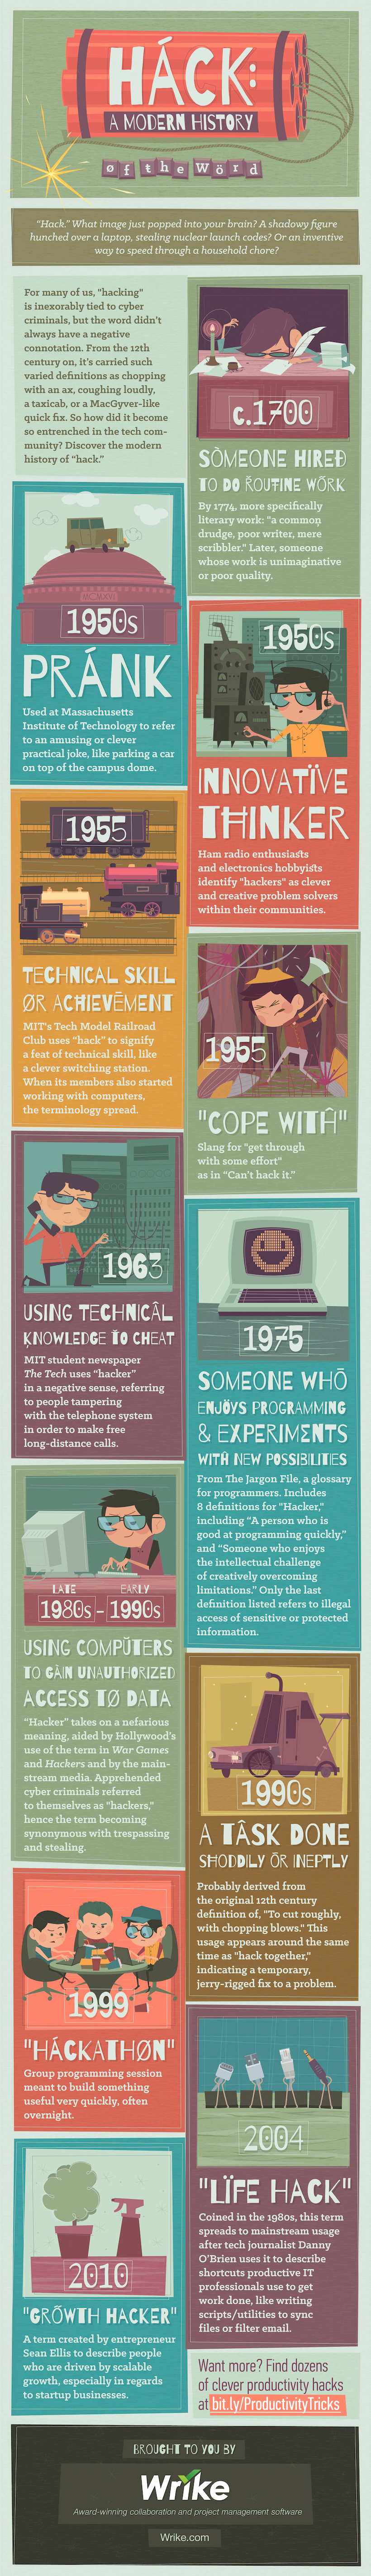 The History of the Word Hack (Infographic)